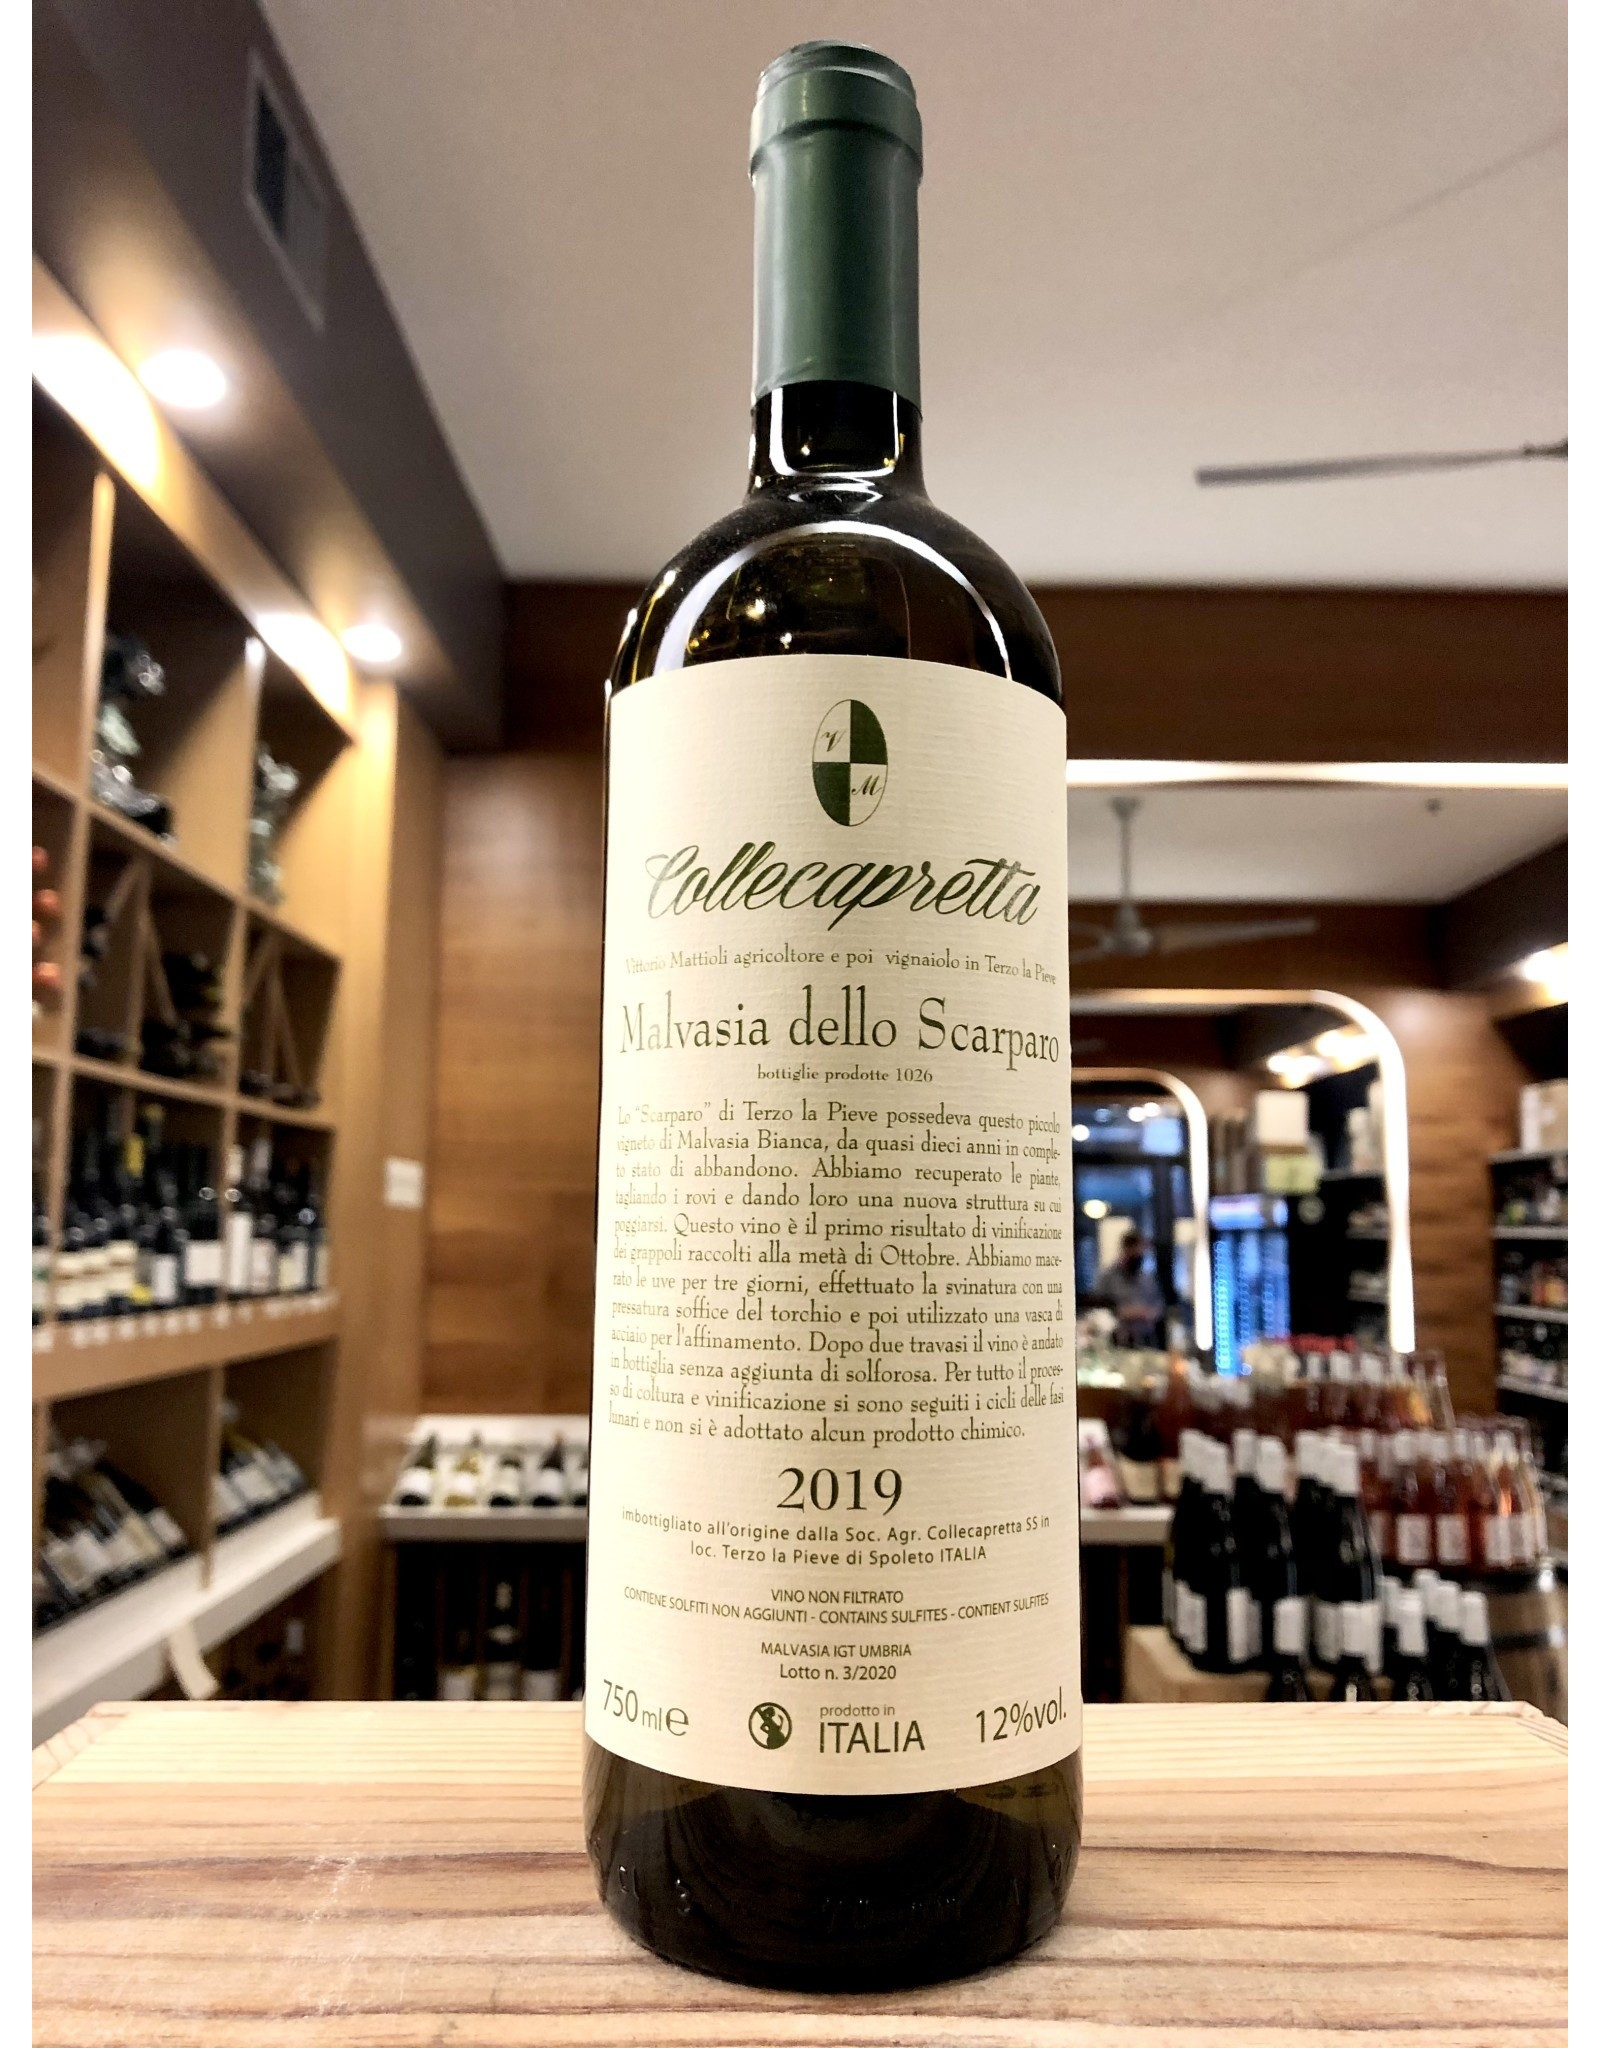 Collecapretta Malvasia dello Scarparo - 750 ML